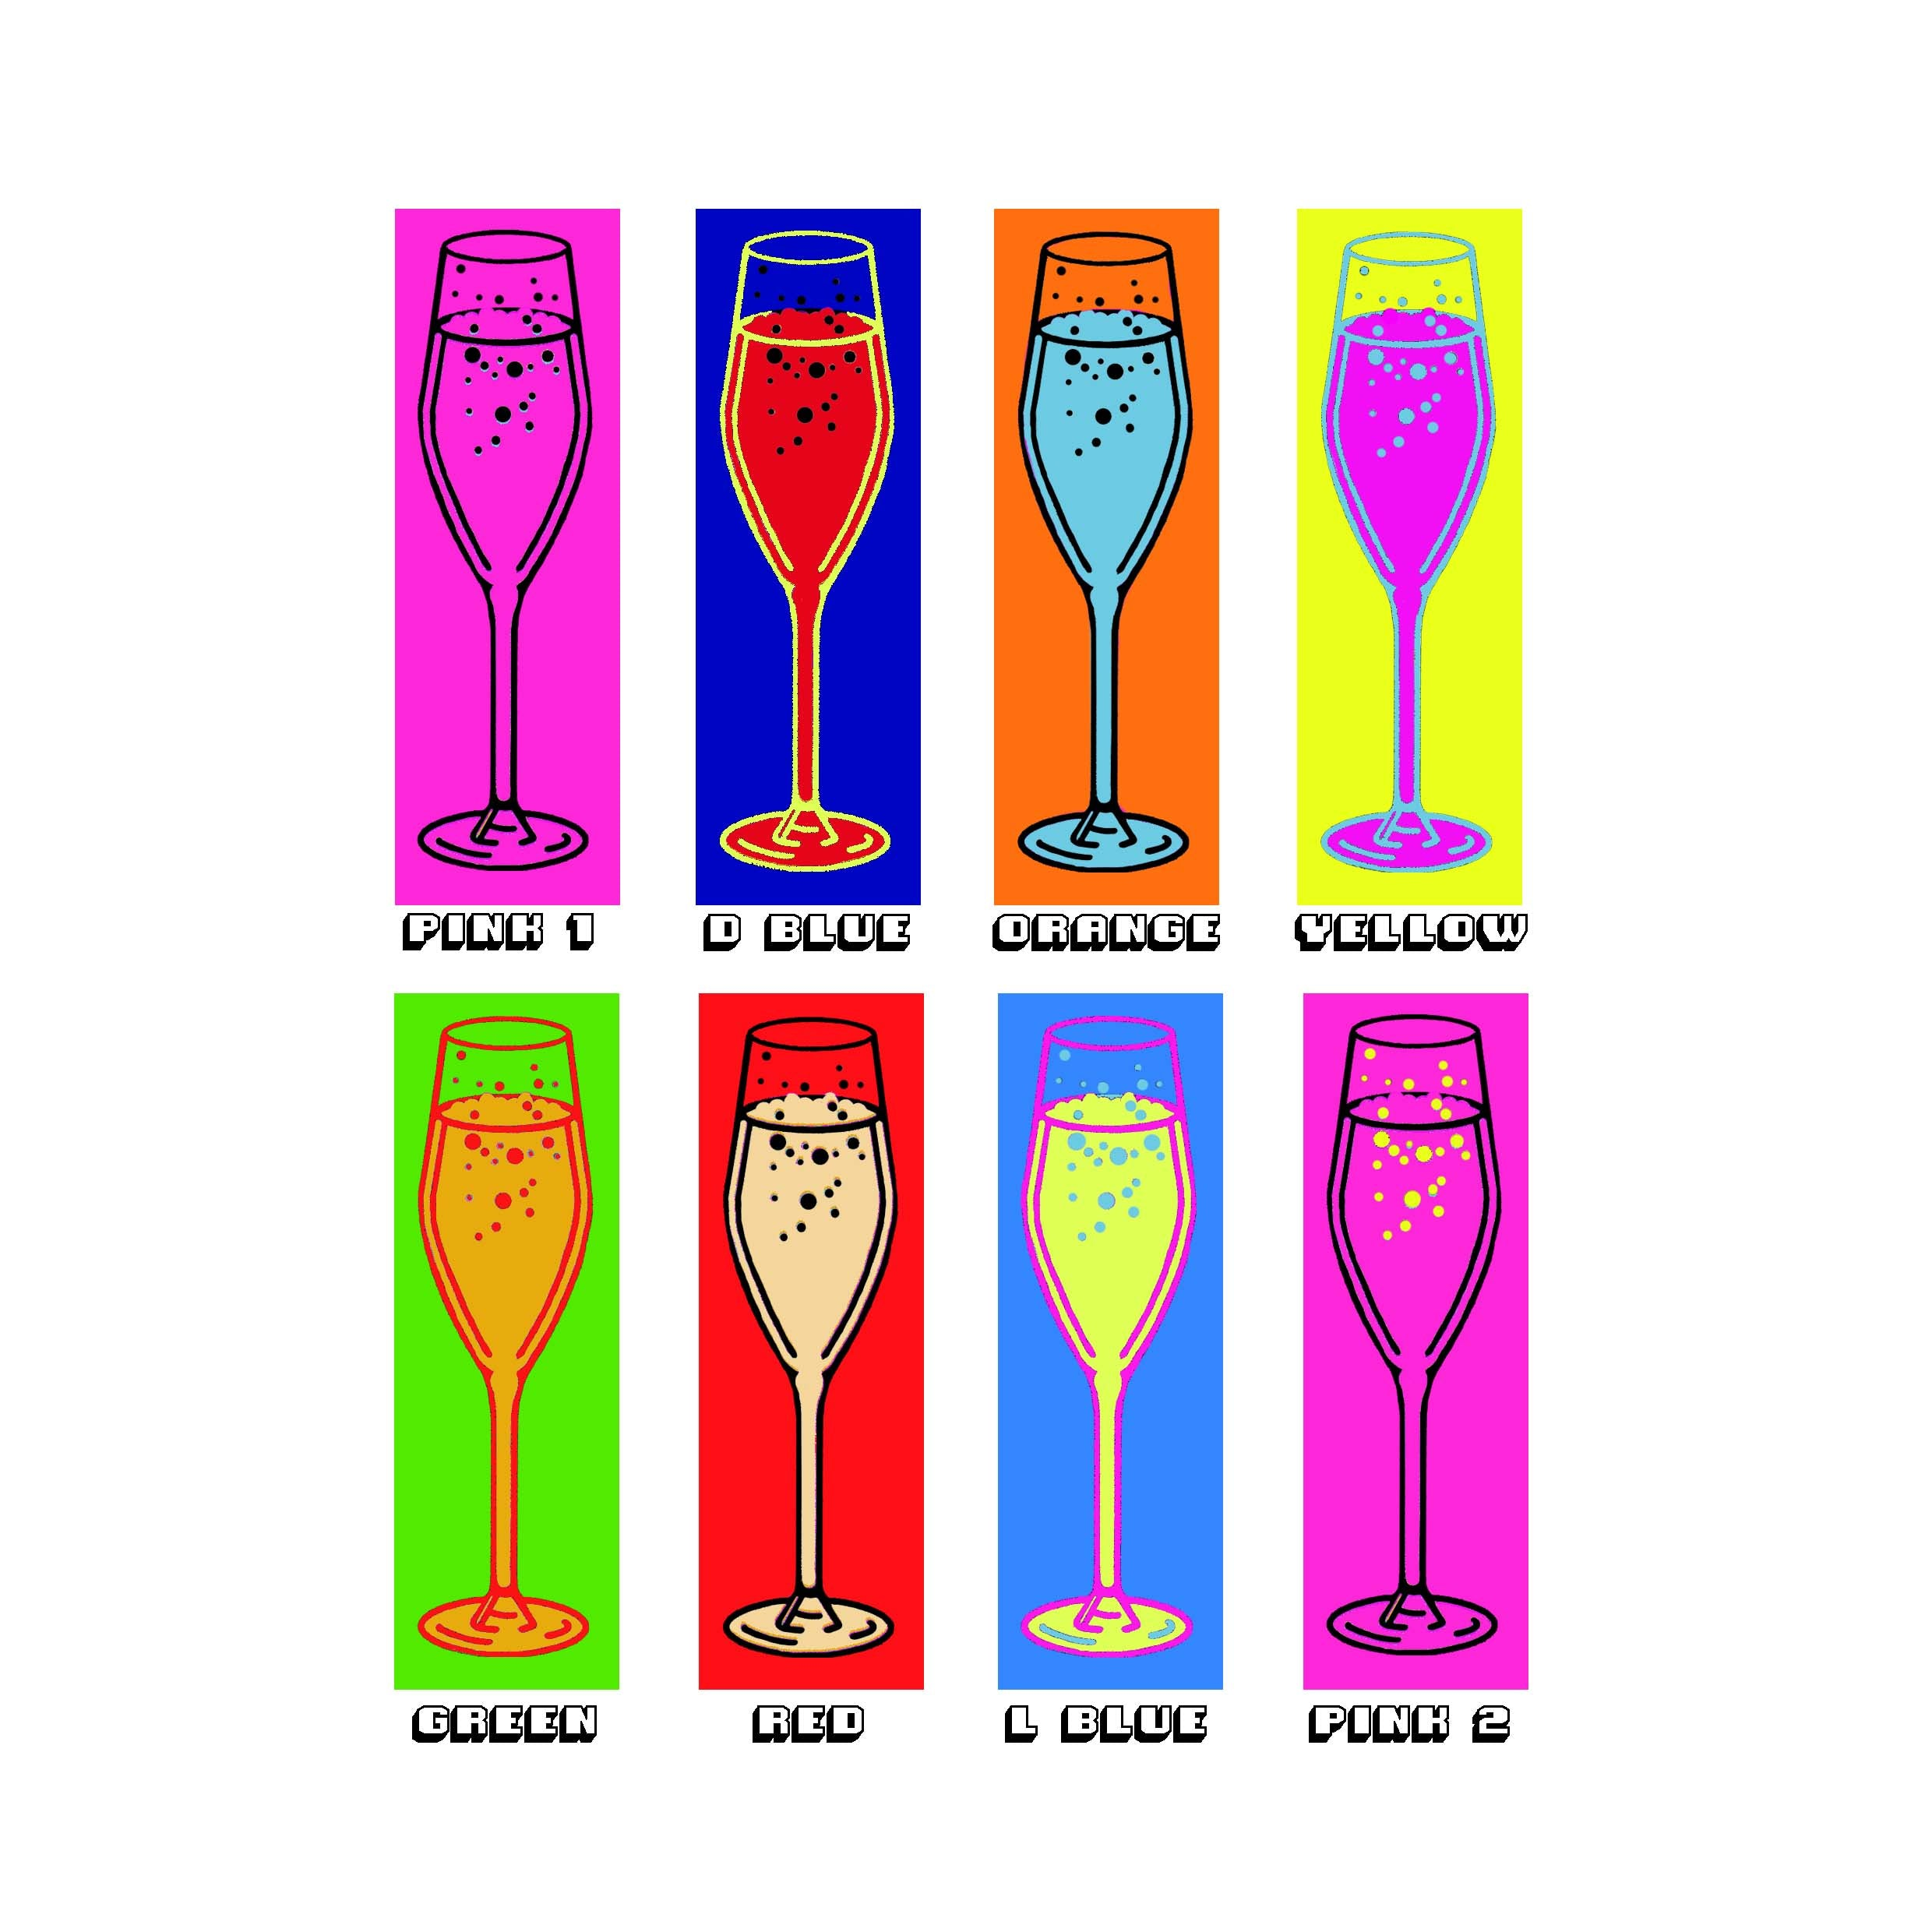 Prosecco pop personalised friends print options